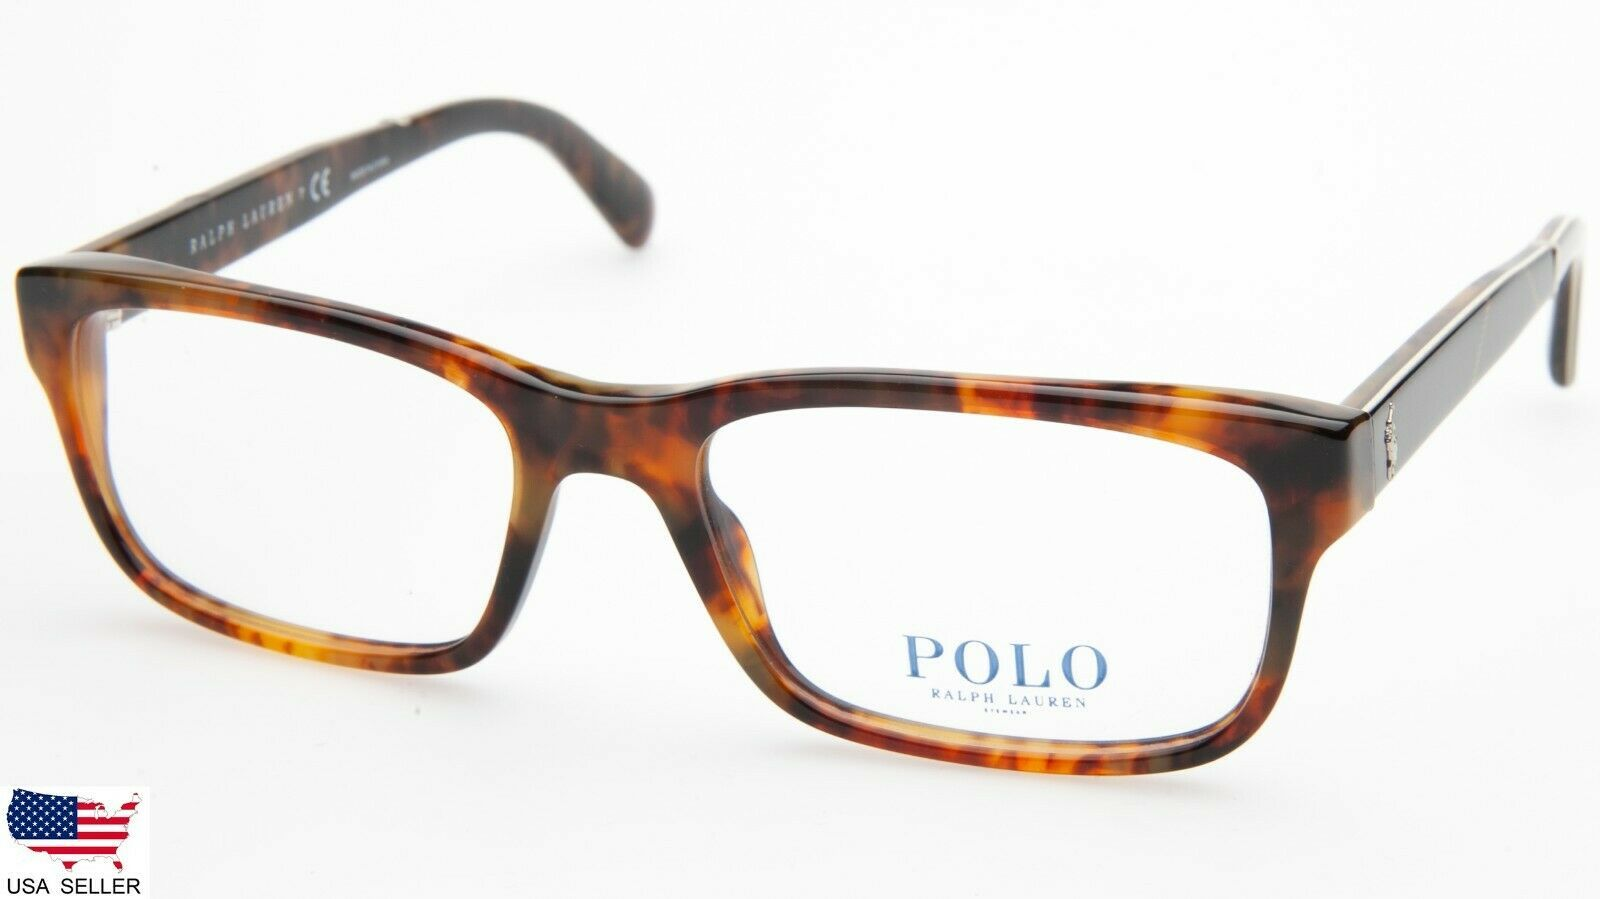 cf933094fc62 NEW POLO RALPH LAUREN PH 2163 5017 SHINY TORTOISE EYEGLASSES FRAME  52-17-145 B33 - $98.98